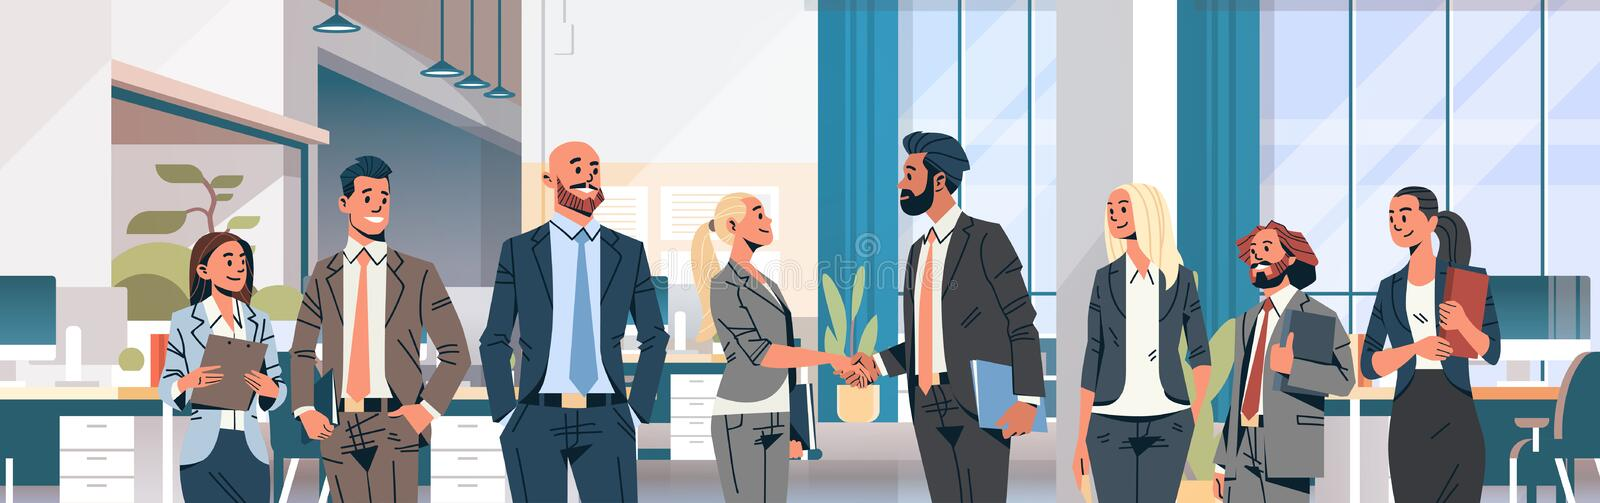 Business people group hand shake agreement communicating concept modern coworking office interior men women partnership. Male female cartoon character portrait vector illustration